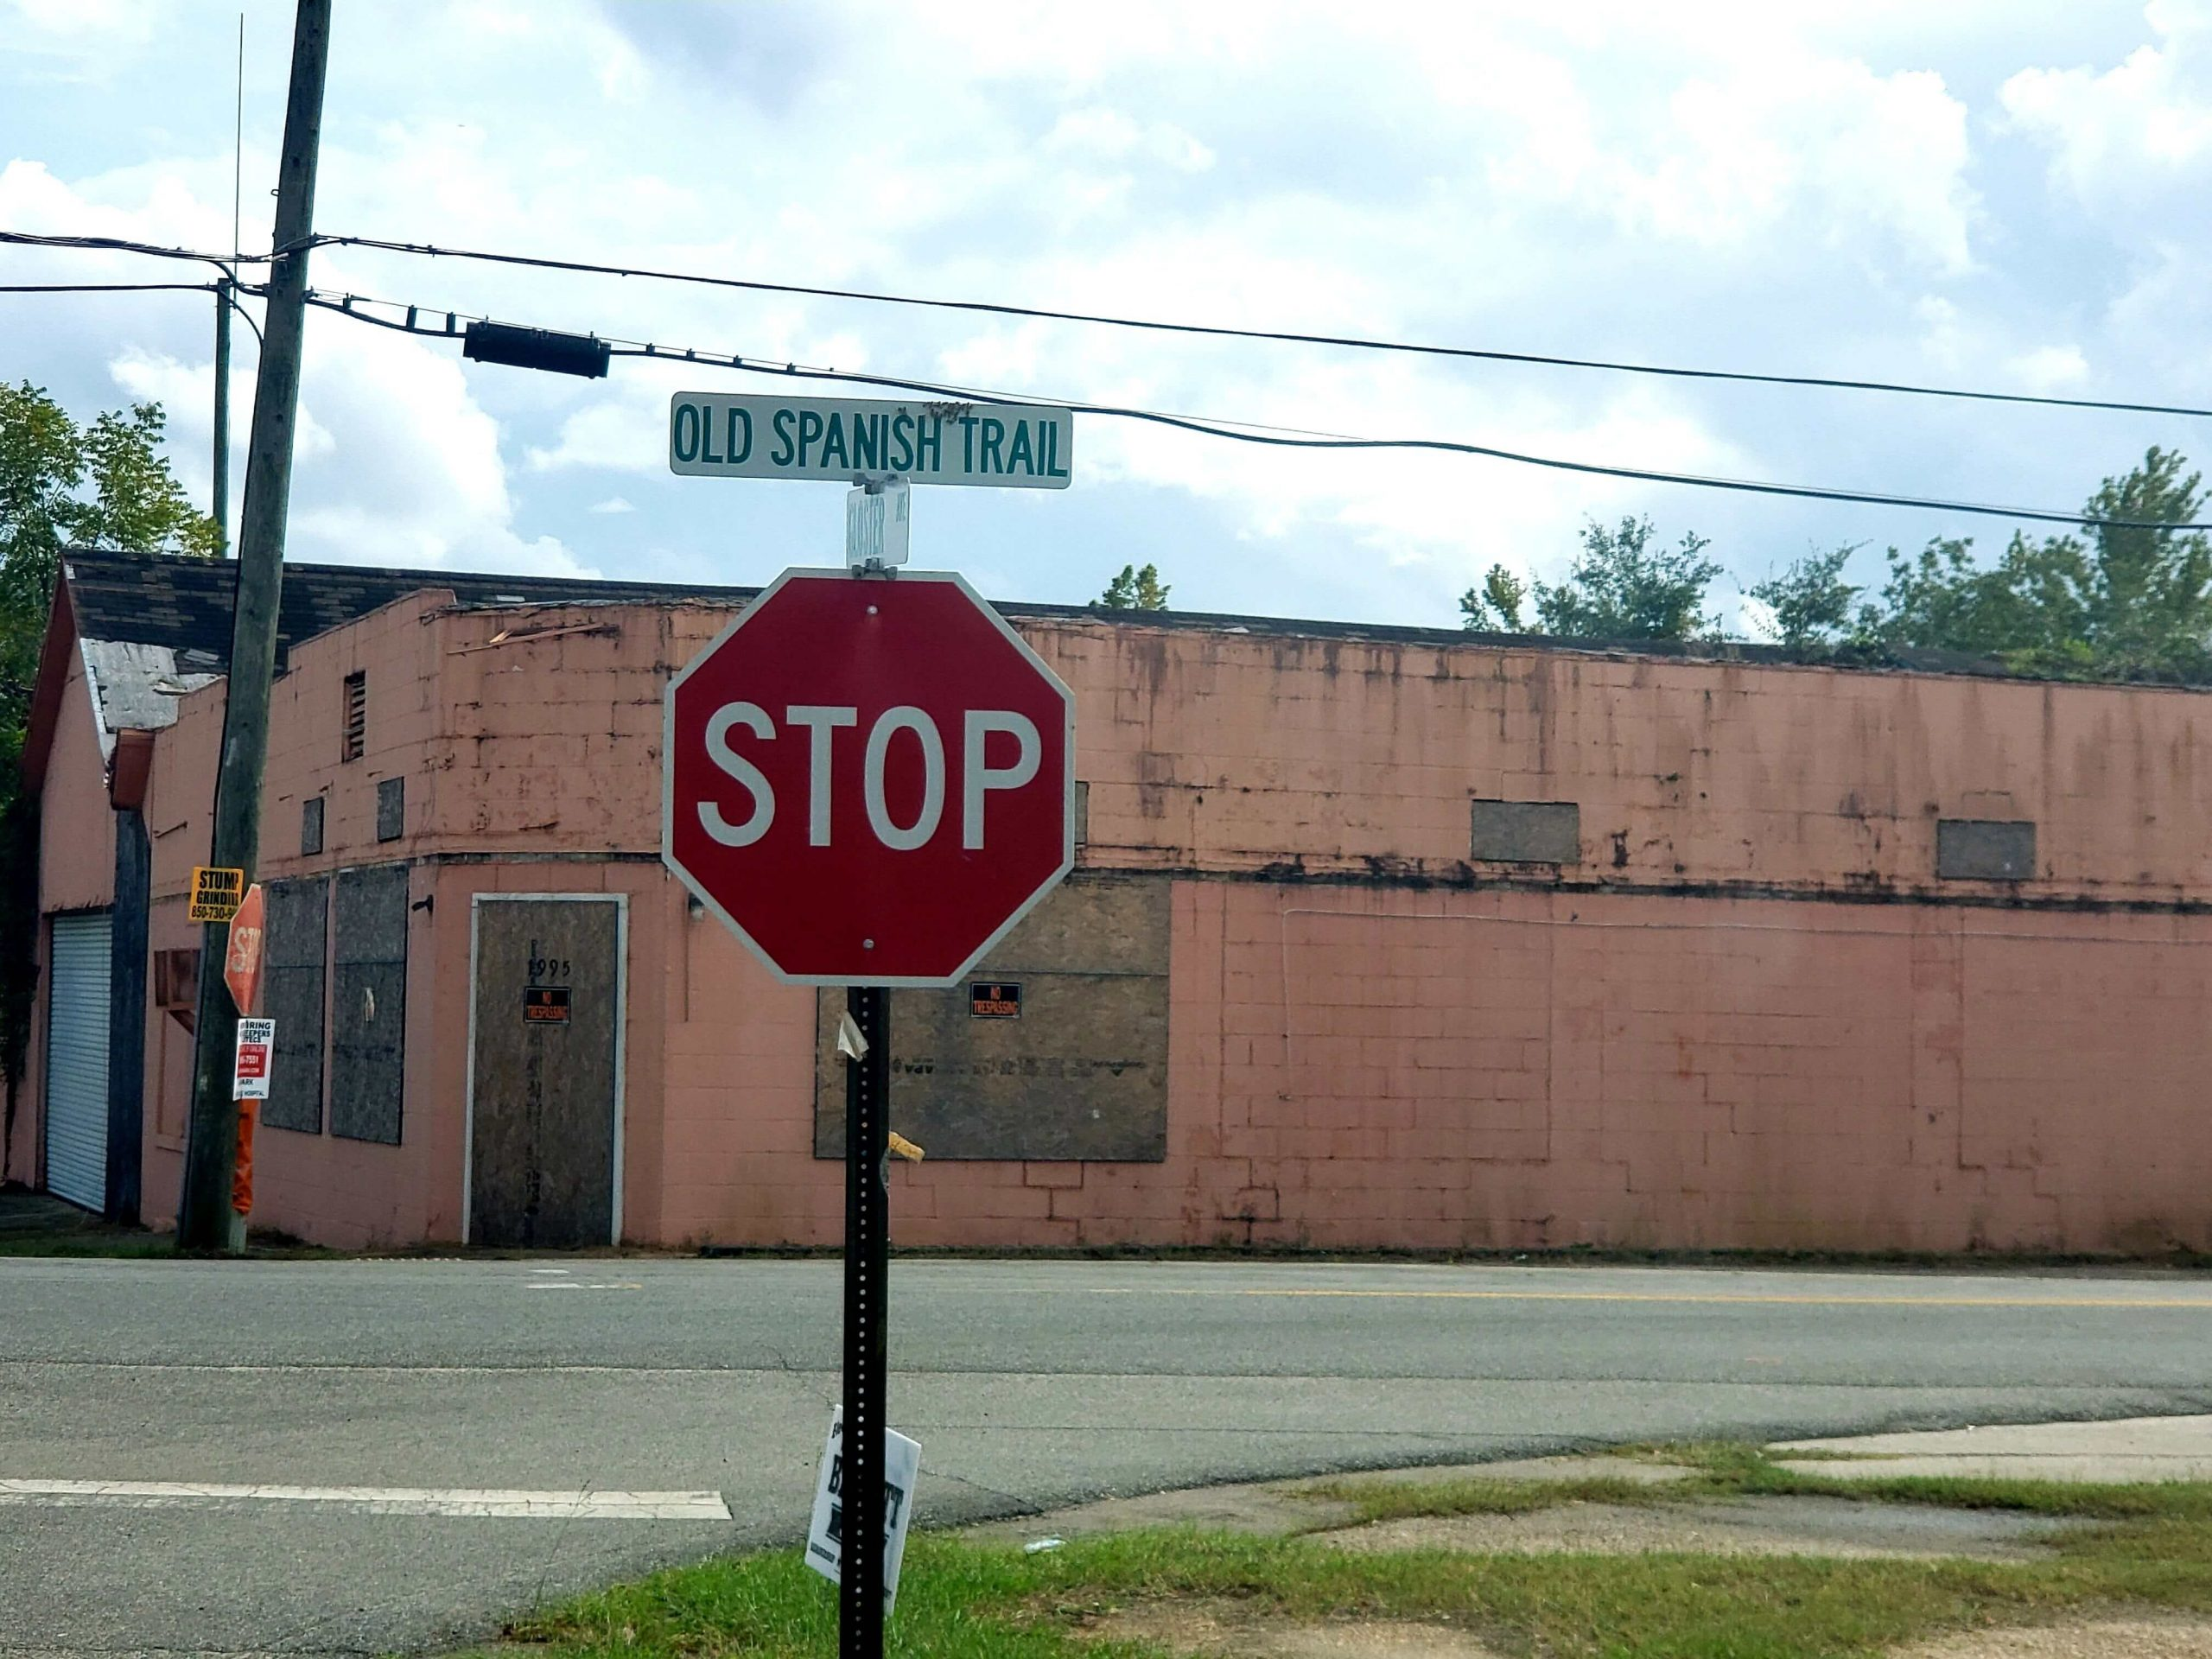 The Old Spanish Trail as it crosses over Gloster Avenue in Sneads, Florida